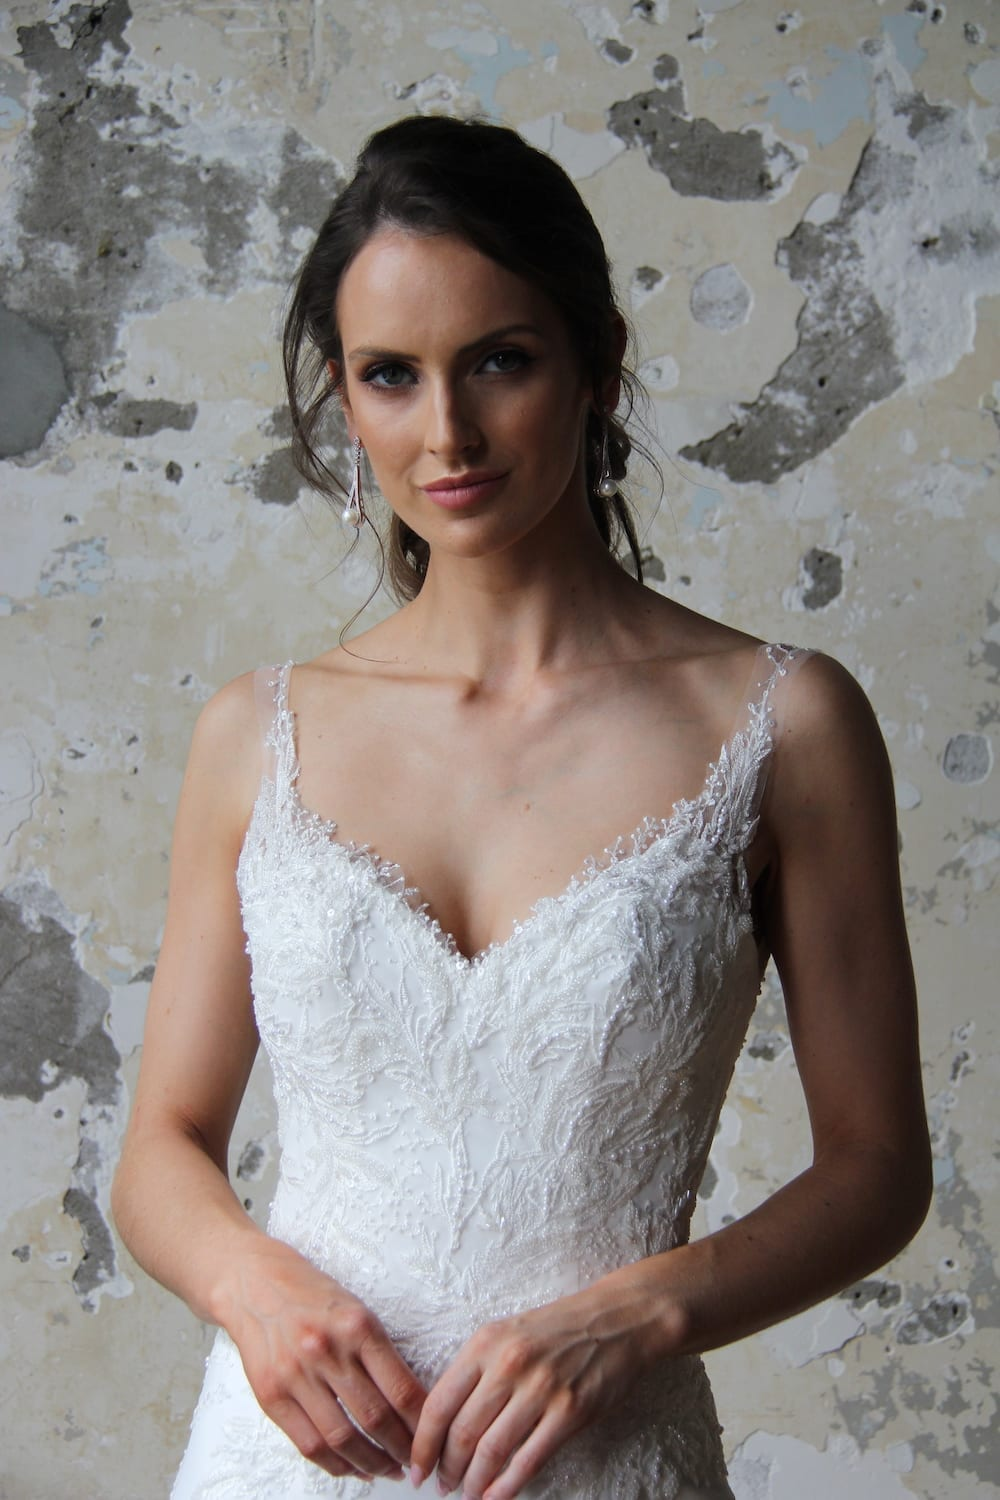 Female model wearing Vinka Design Modern Muse Wedding Dress. In chic warehouse the front detail of a gown with delicate beaded leaf lace, sheer back straps and bridal crepe skirt with train.